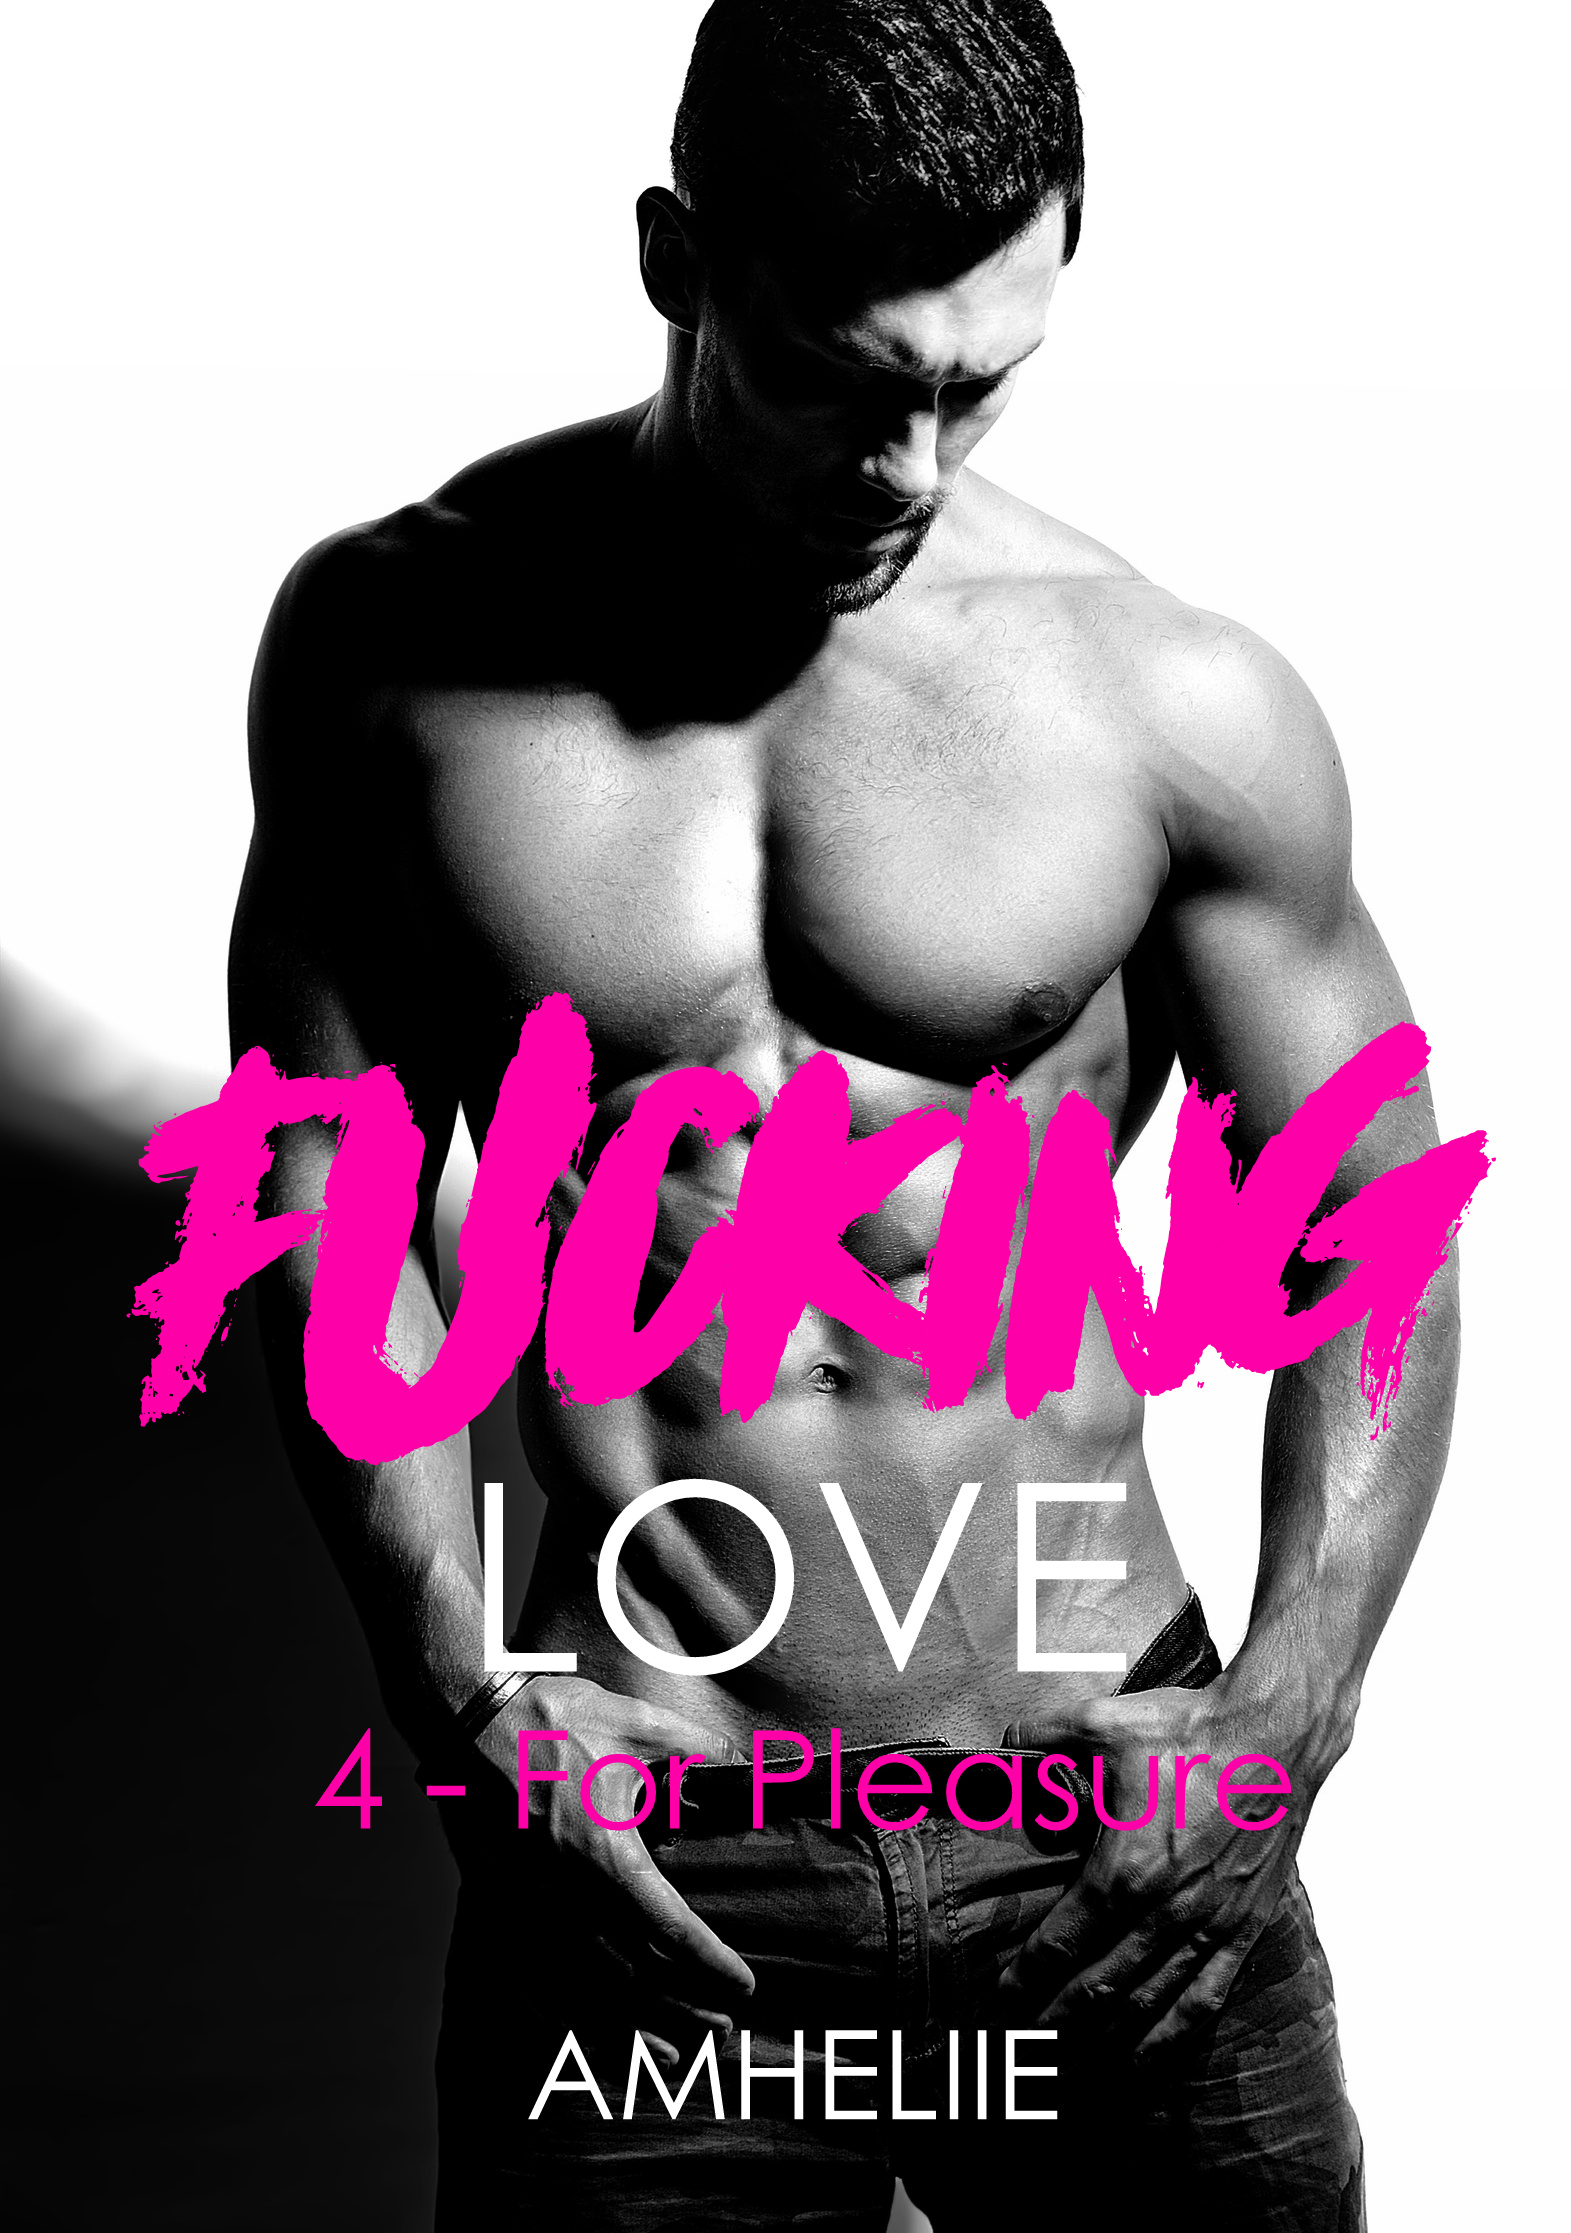 Fucking love – Tome 4 : For Pleasure écrit par Amélie C. Astier